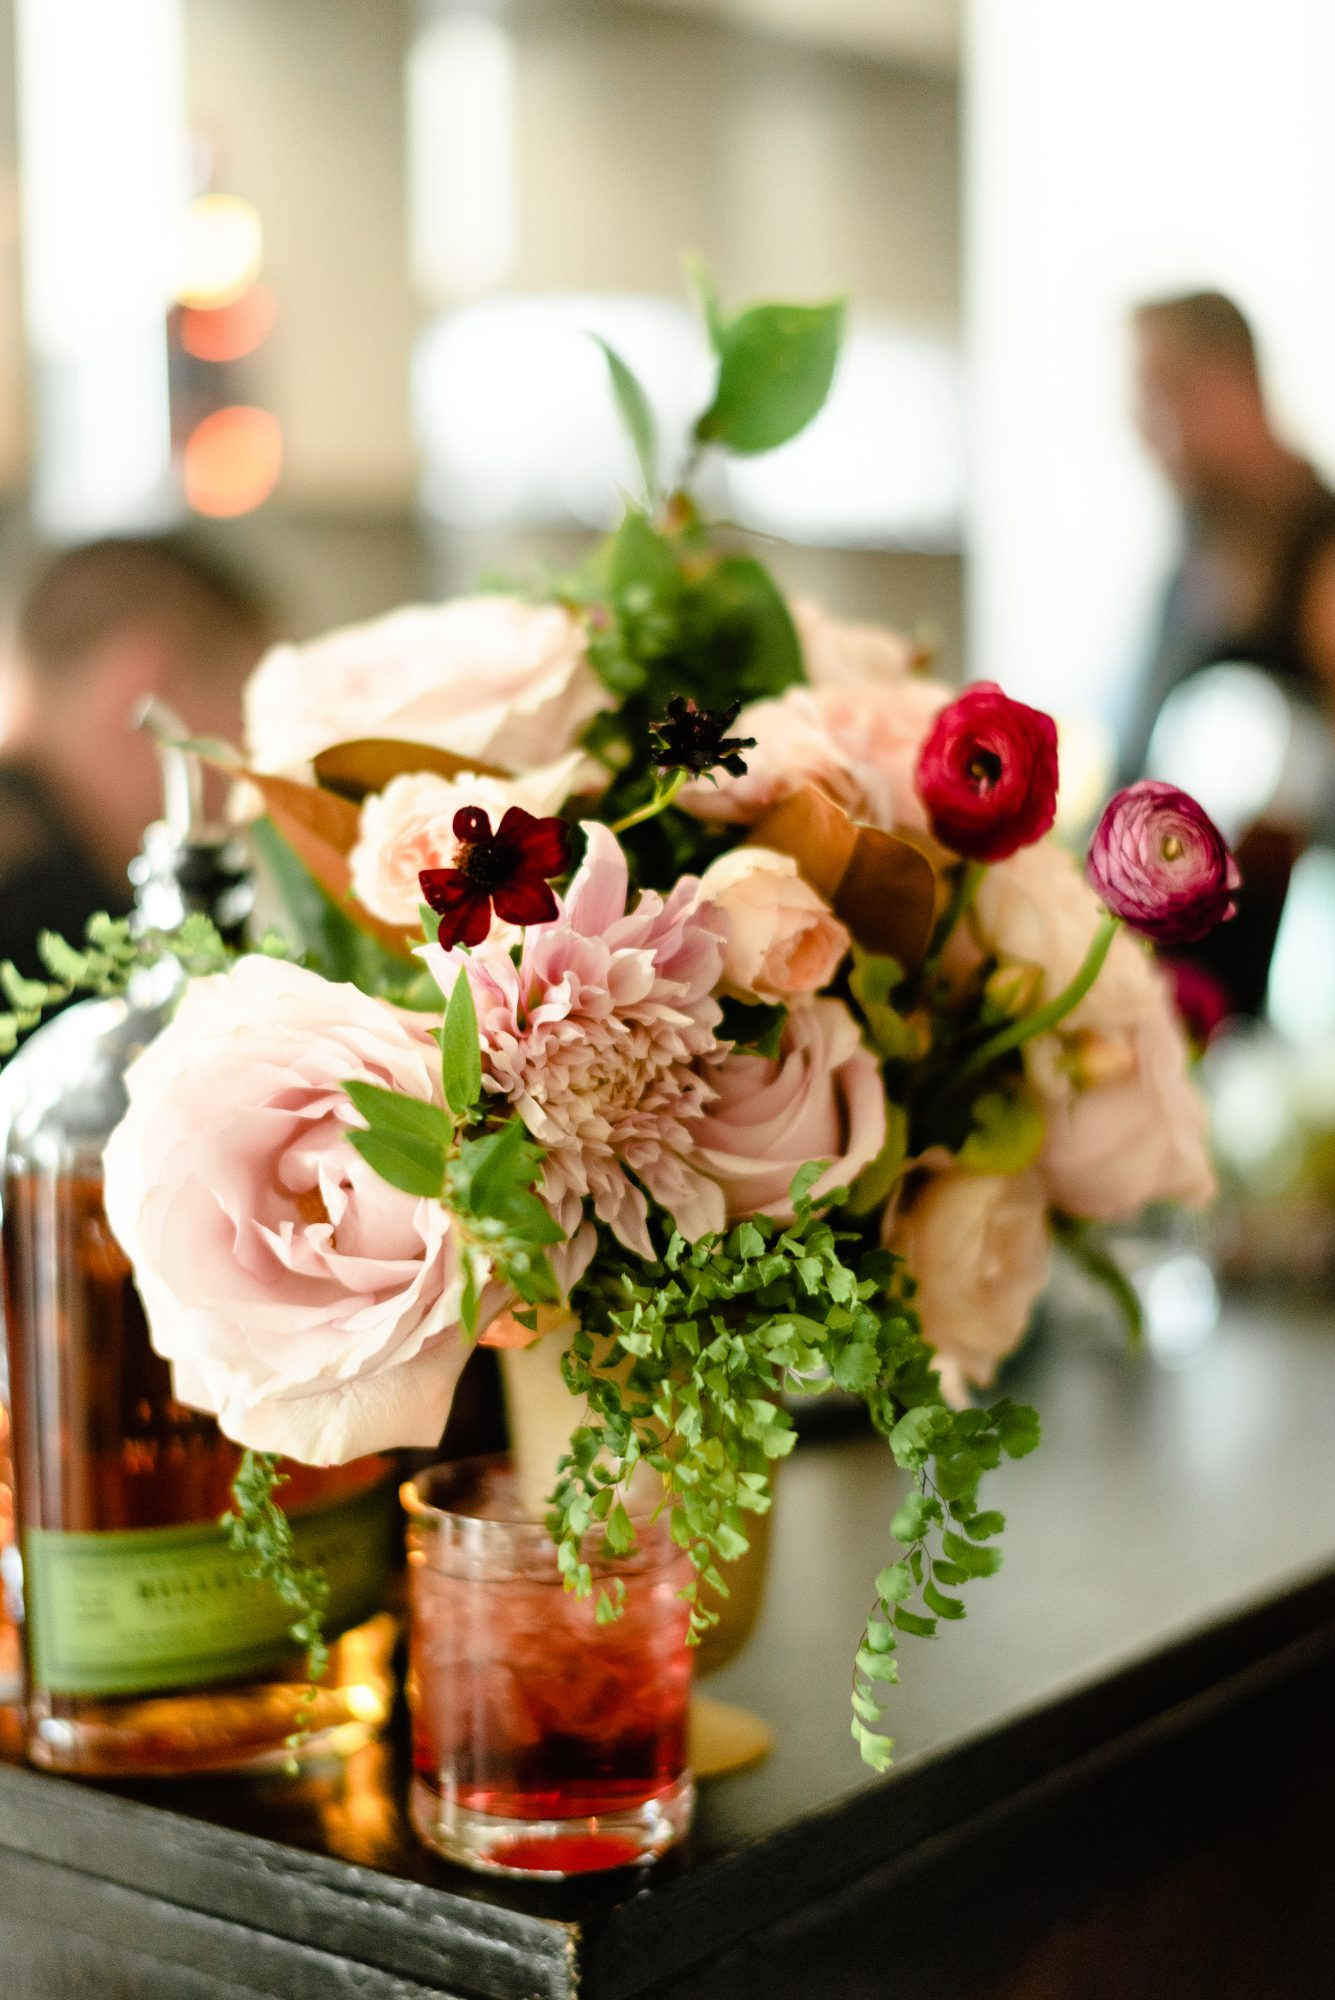 ryan shep wedding cocktails surrounded by floral decor